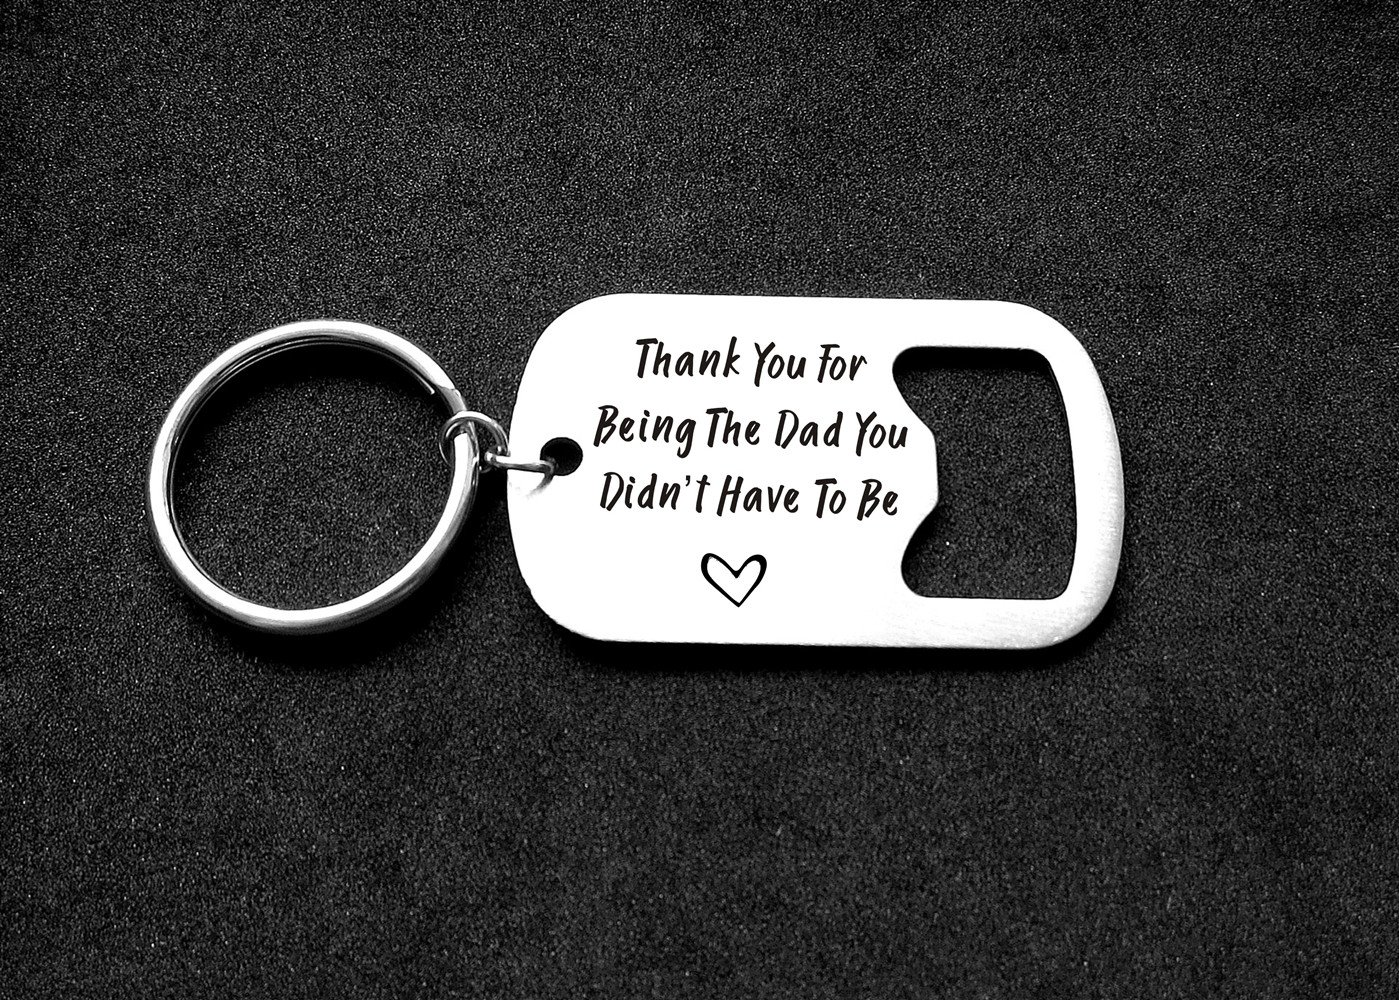 Step Dad Gifts Thank You For Being The Dad You Didn't Have To Be Bottle Opener Keychain Stepfather Keychain Father in Law Gifts